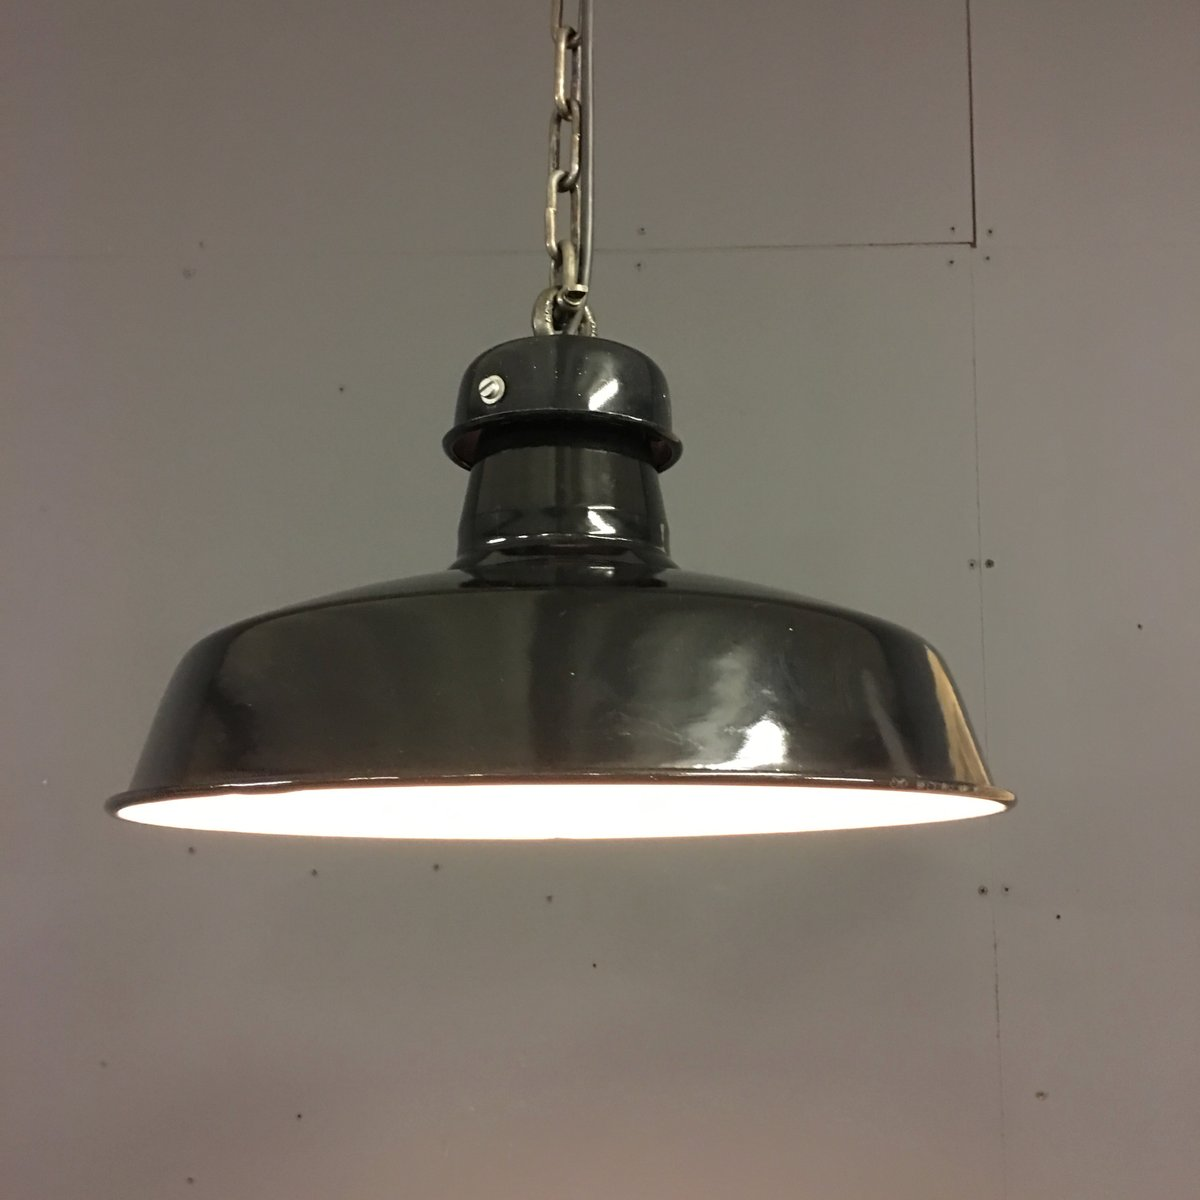 french industrial factory pendant light in black enamel 1920s for sale at pamono. Black Bedroom Furniture Sets. Home Design Ideas